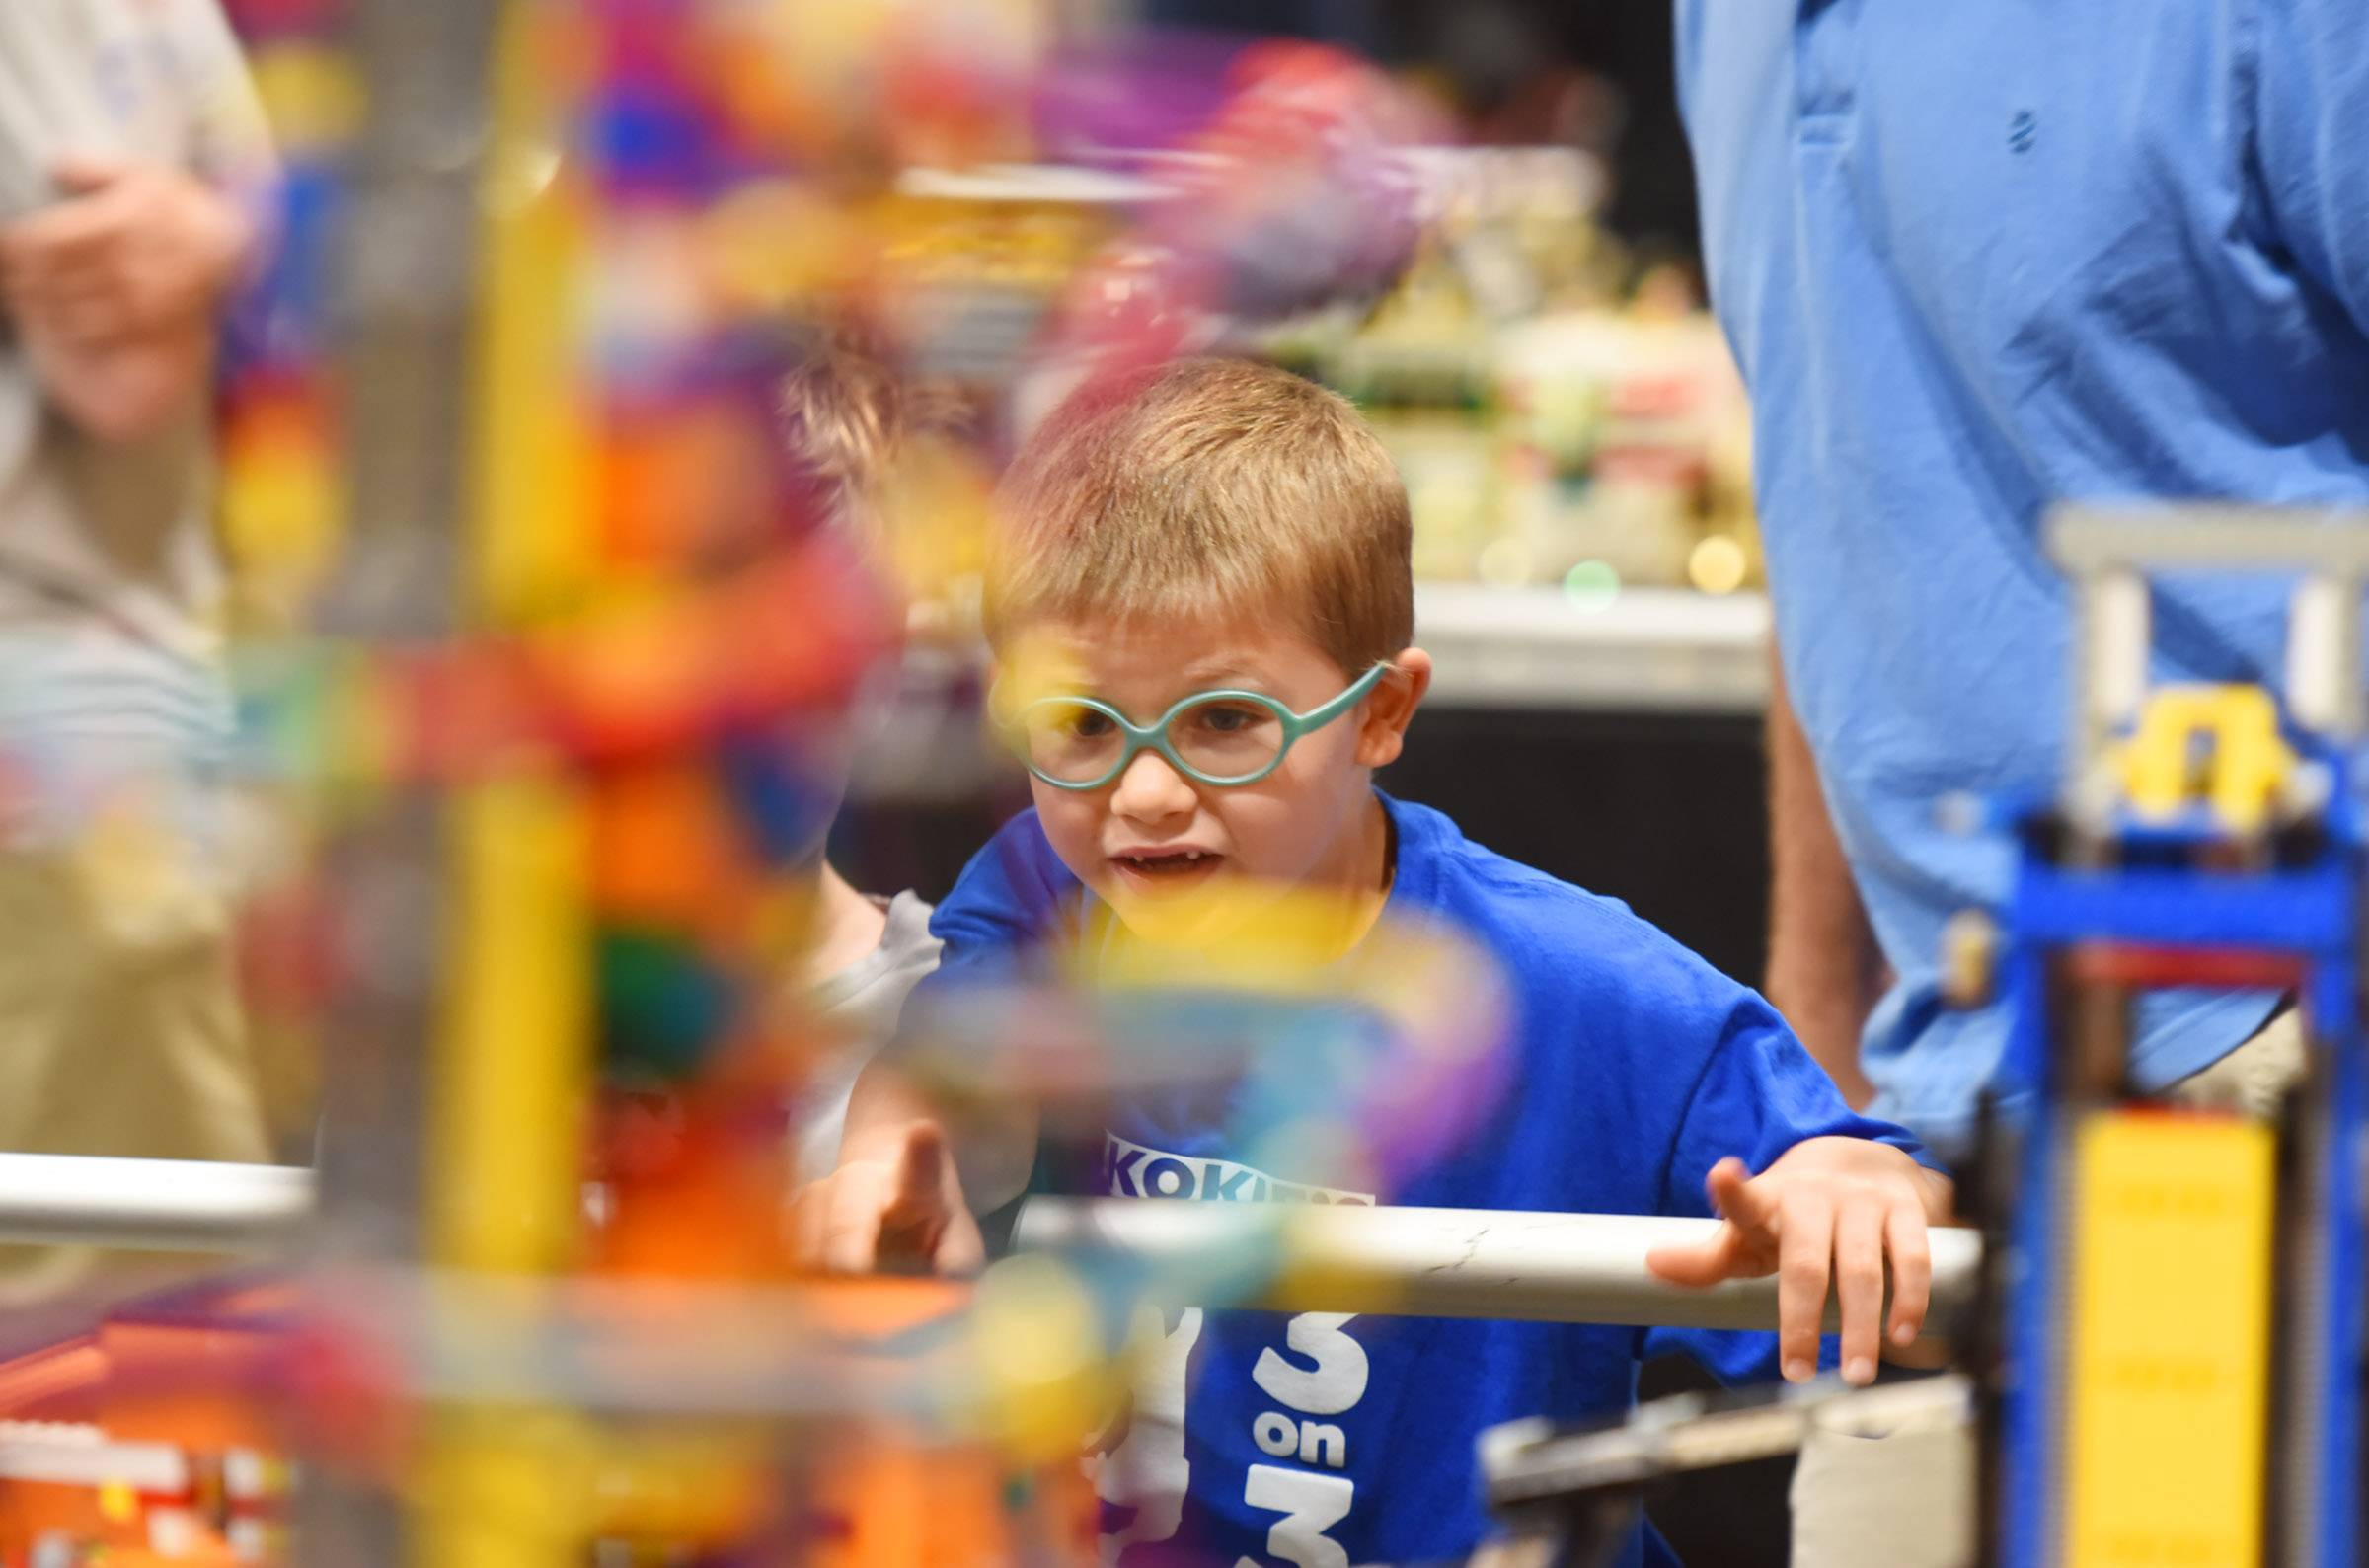 Sawyer Niedfeldt, 6, looks closely at The Great Ball Contraption, a huge Rube Goldberg machine that will move about 50,000 small Lego soccer balls during the weekend at the 10th annual Brickworld Chicago LEGO Exposition at the Schaumburg Renaissance Convention Center. Sawyer was with his dad, Matt Niedfeldt of Skokie, getting ideas for his July birthday.